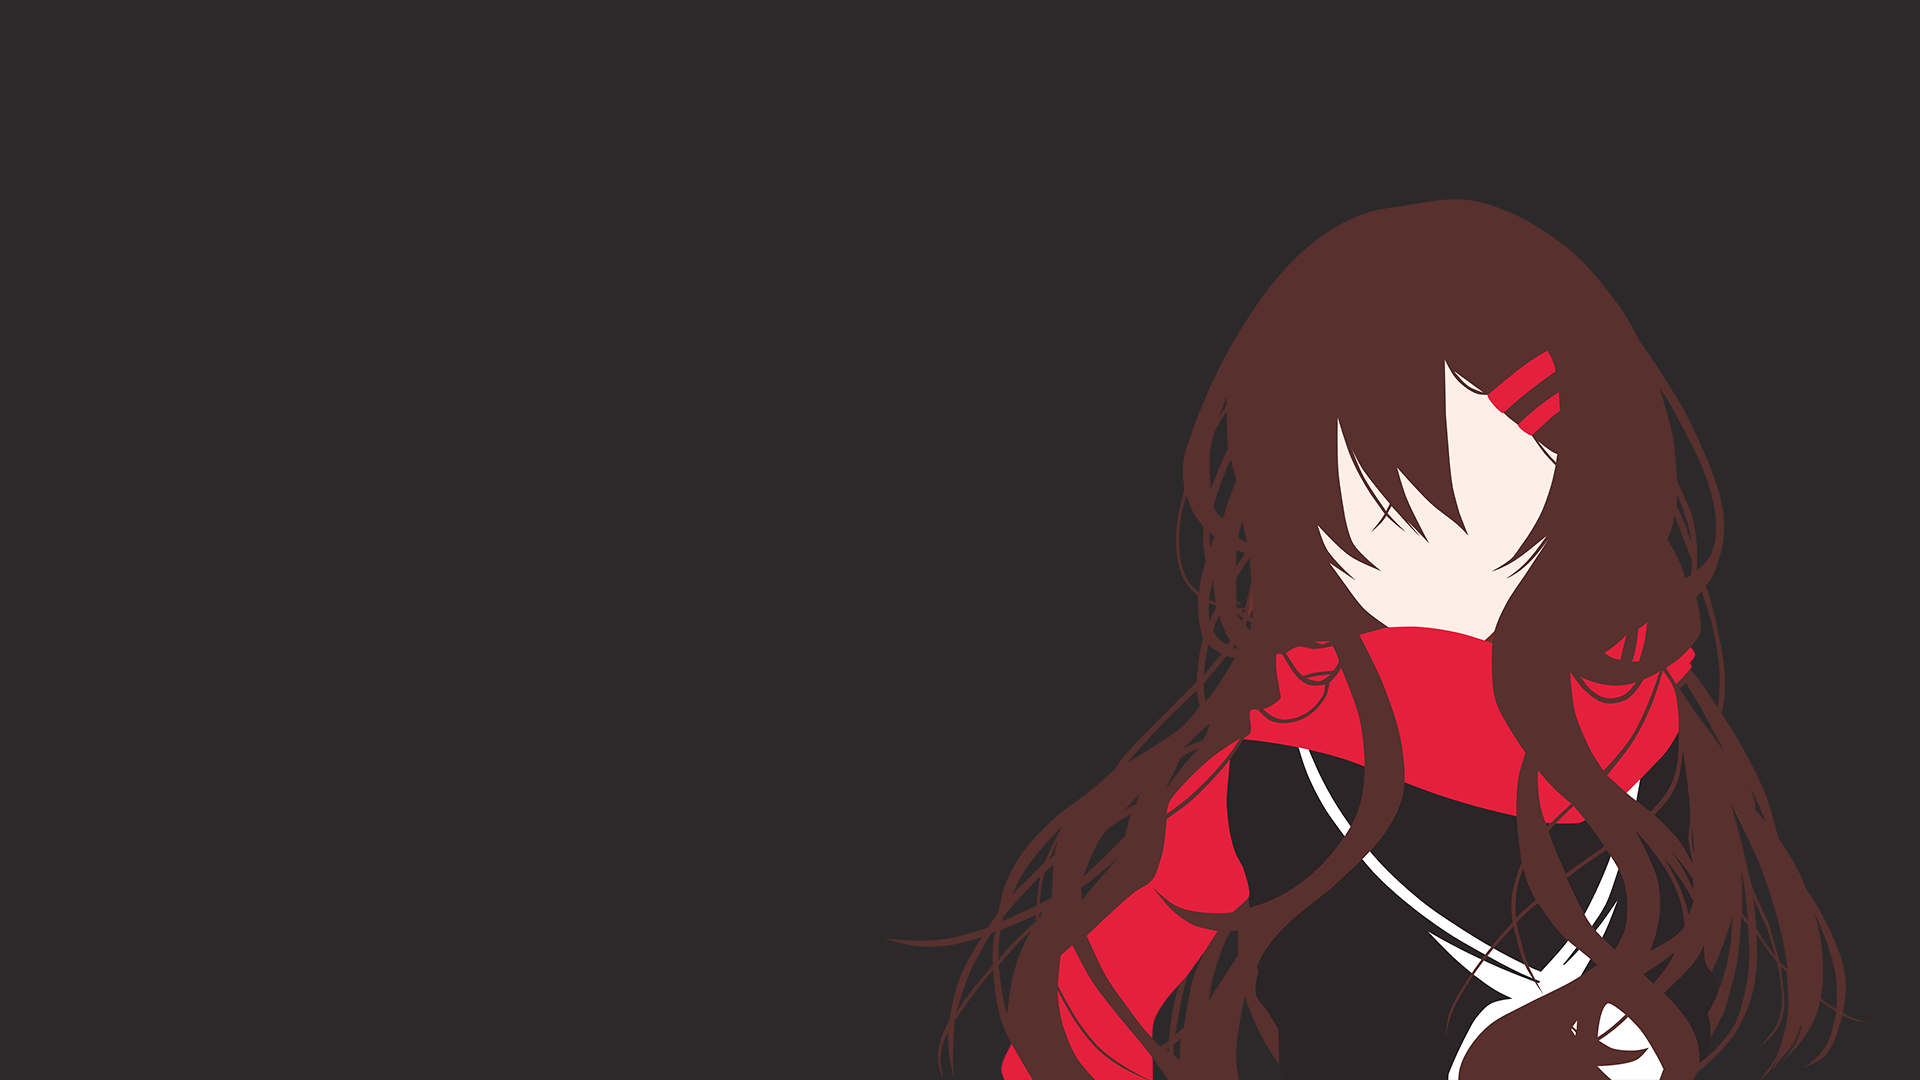 The Strength [Minimalist] by Rendracula on DeviantArt ...